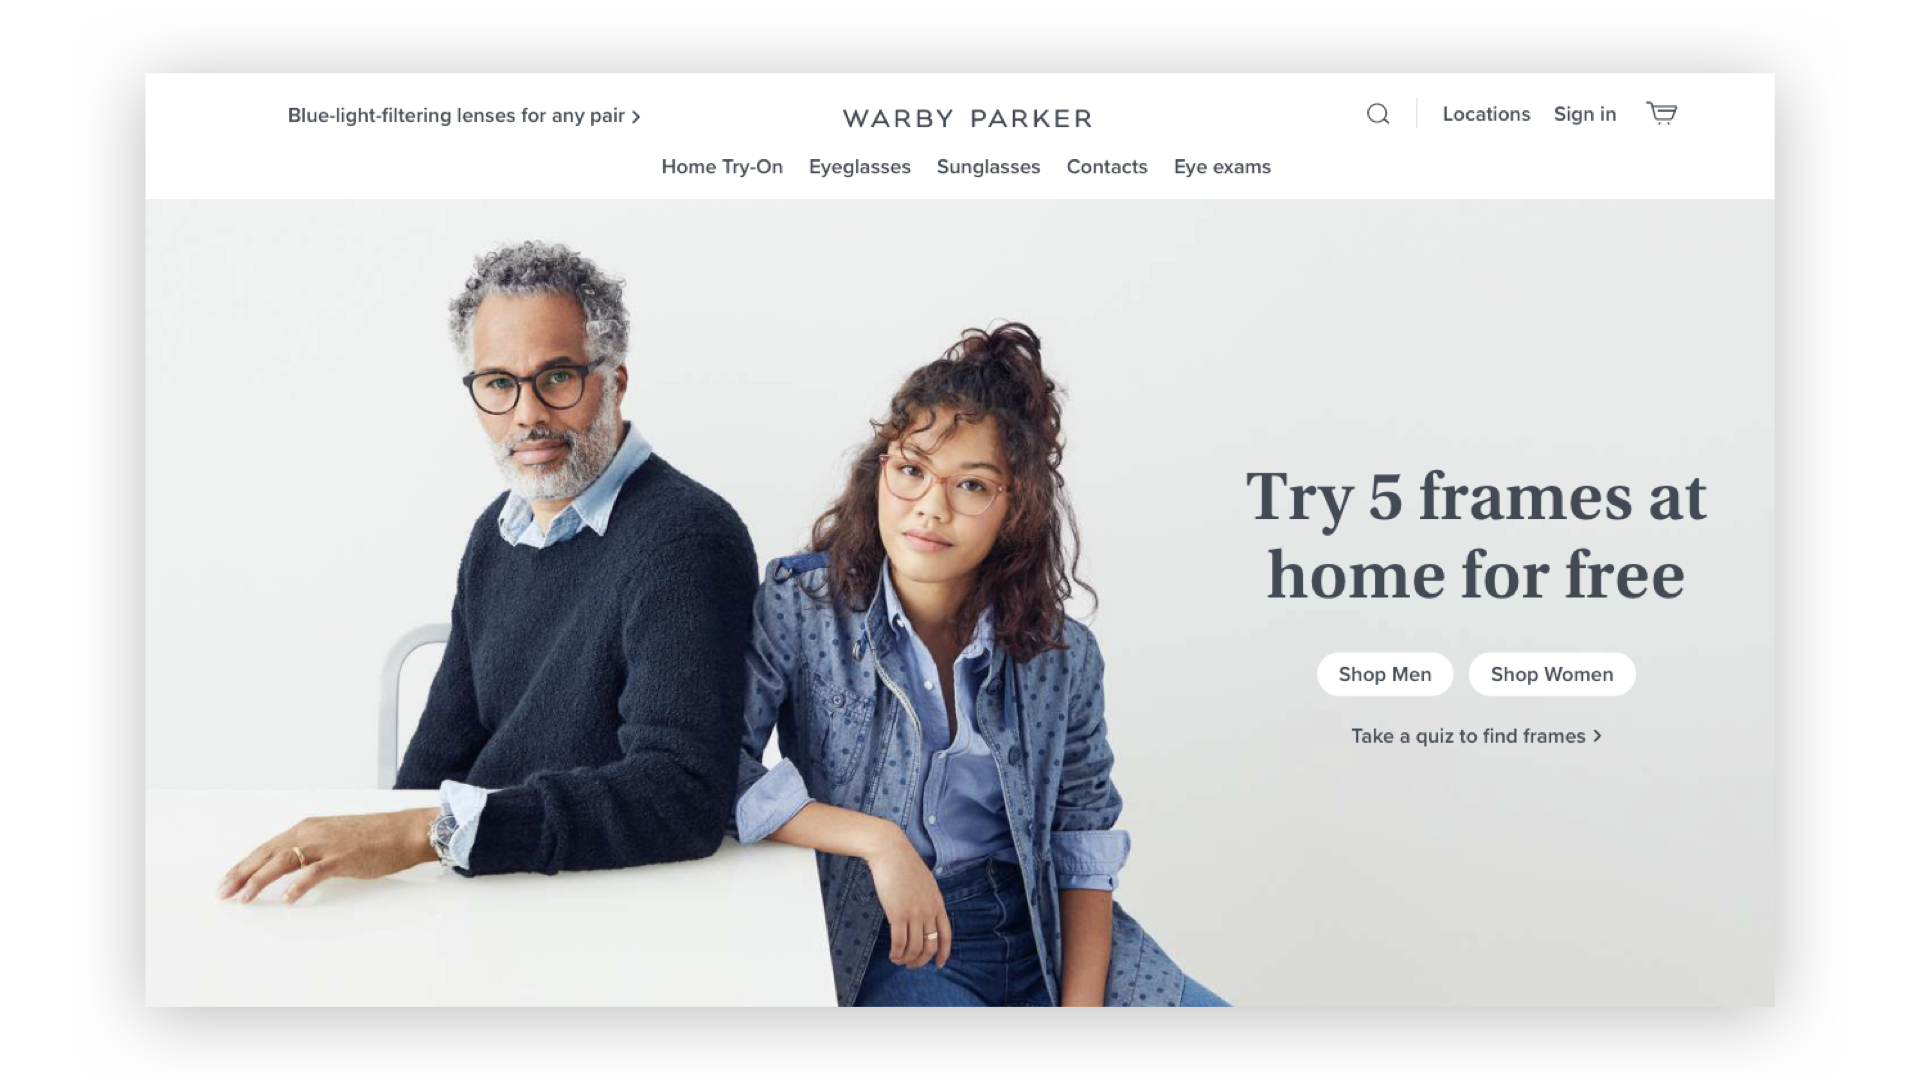 G & Co. is a DTC marketing agency and DTC eCommerce agency: Warby Parker's homepage